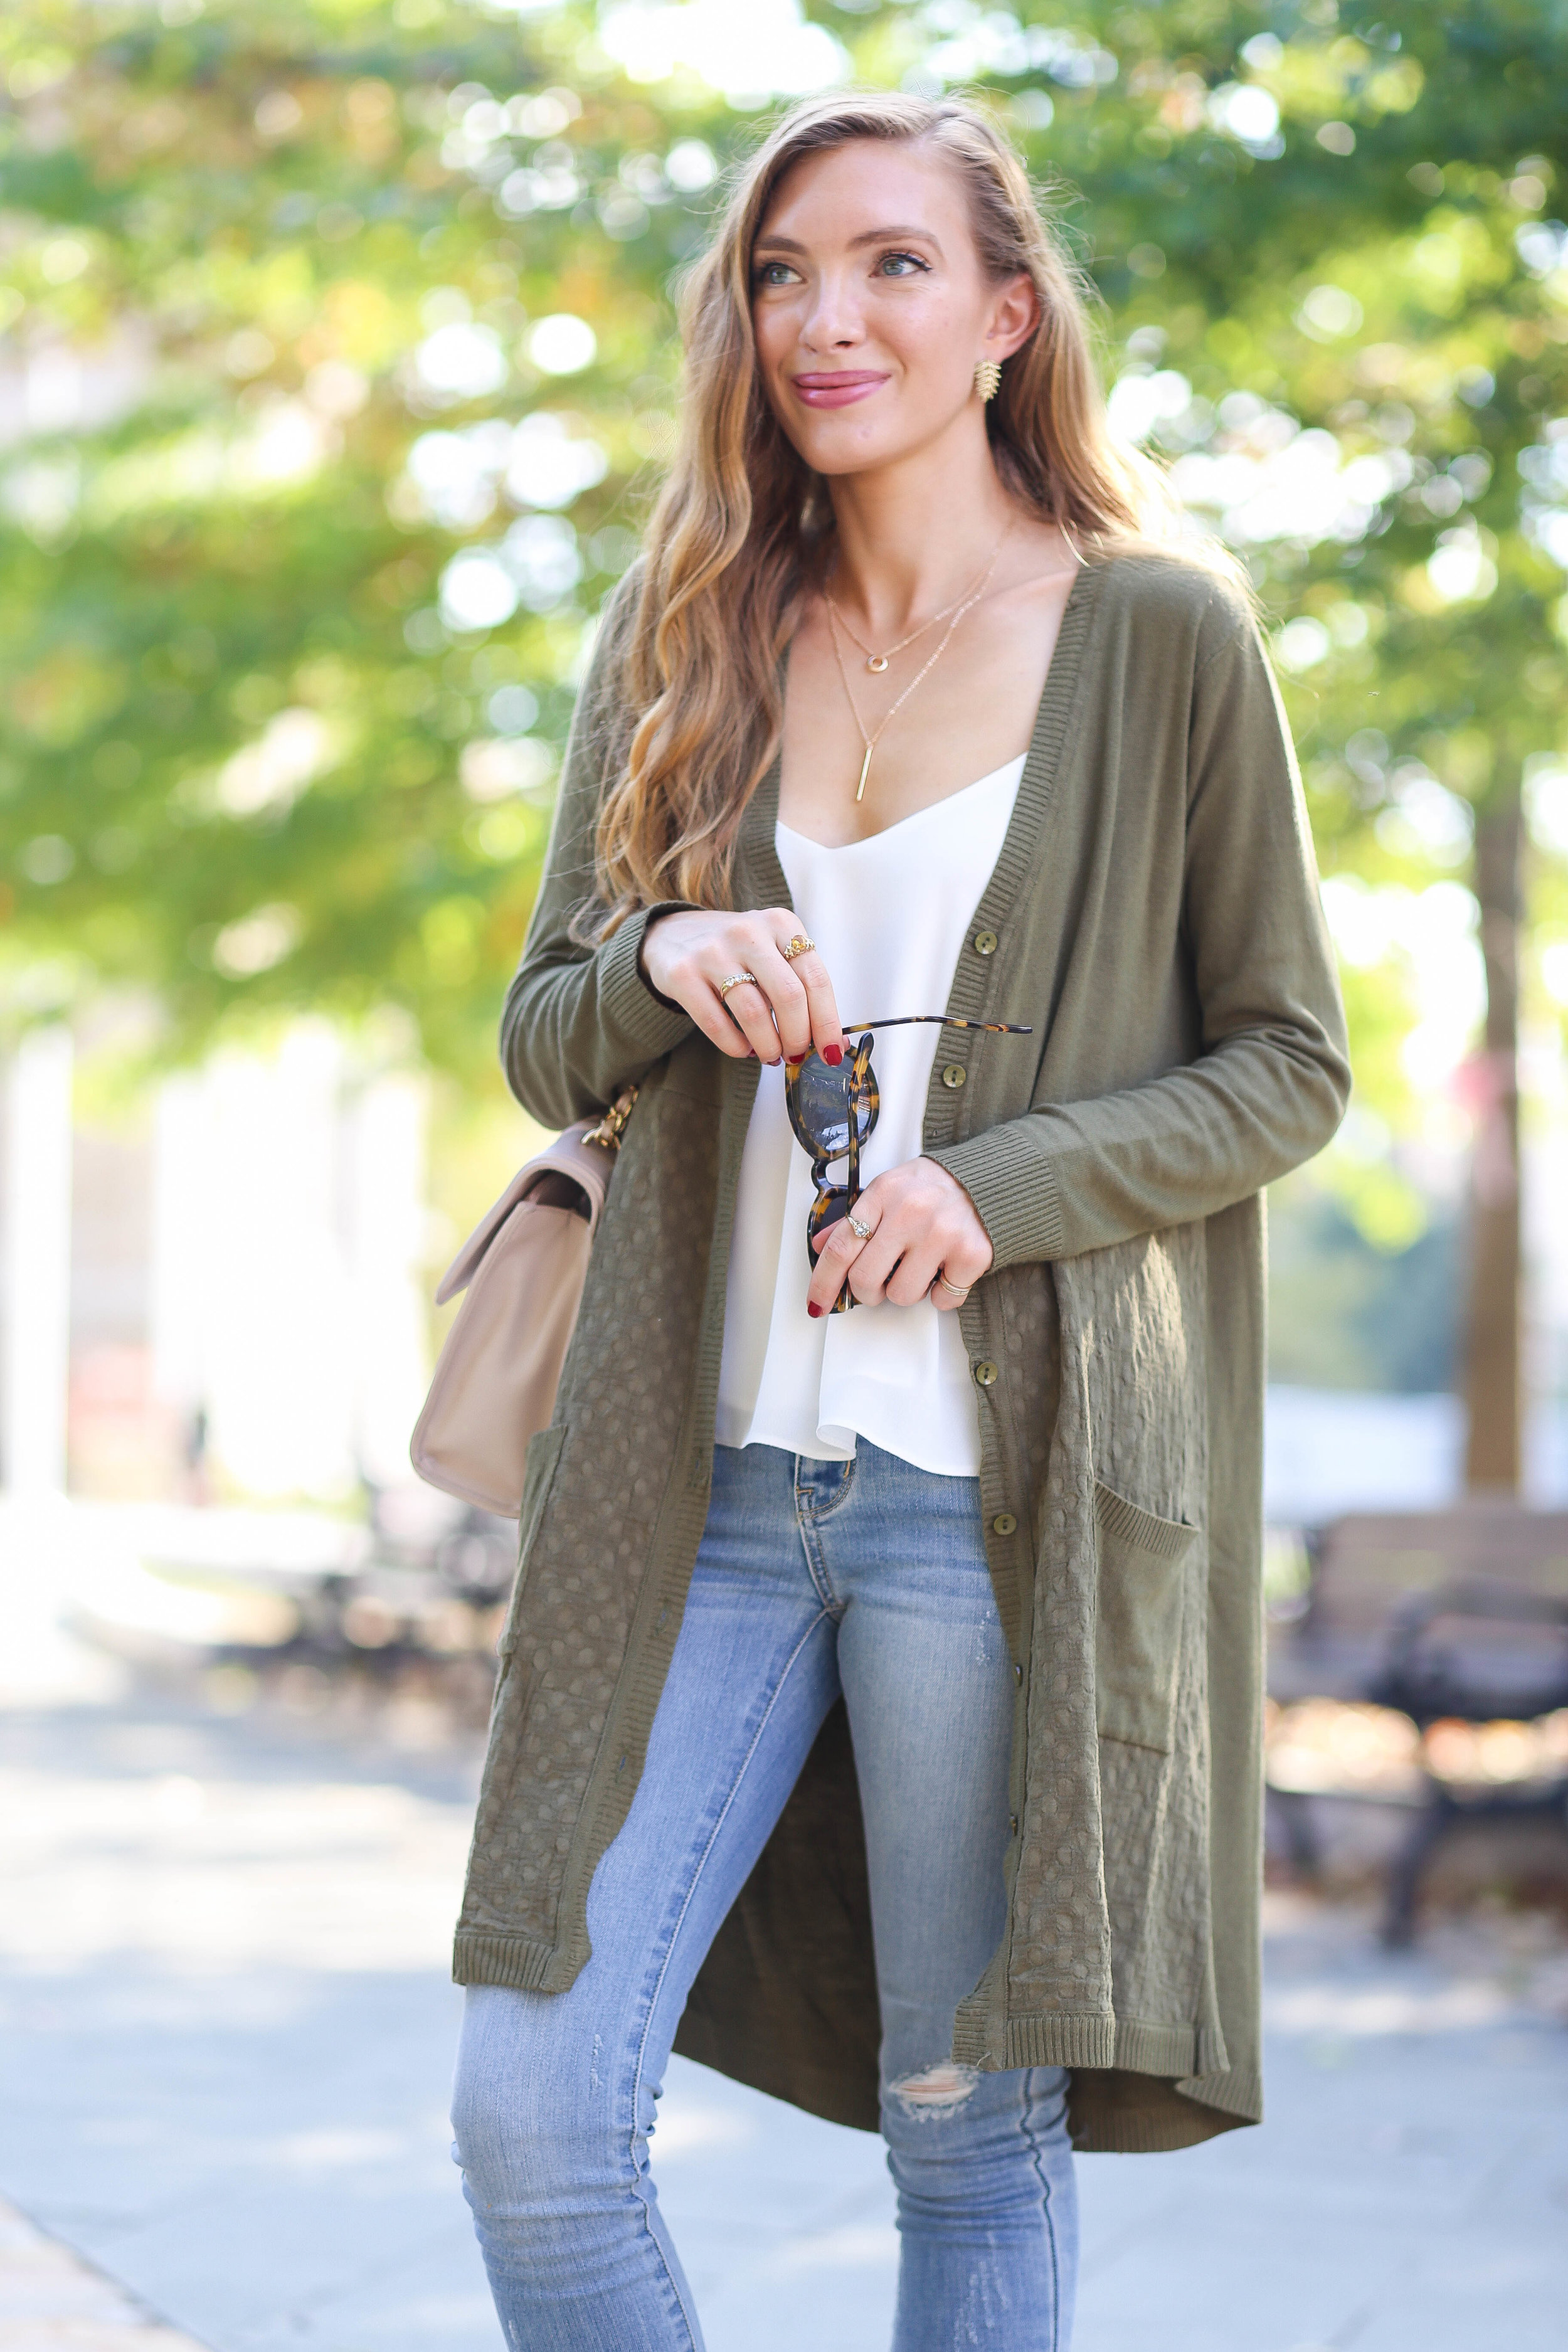 Jeans Olive Green Cardigan Outfit